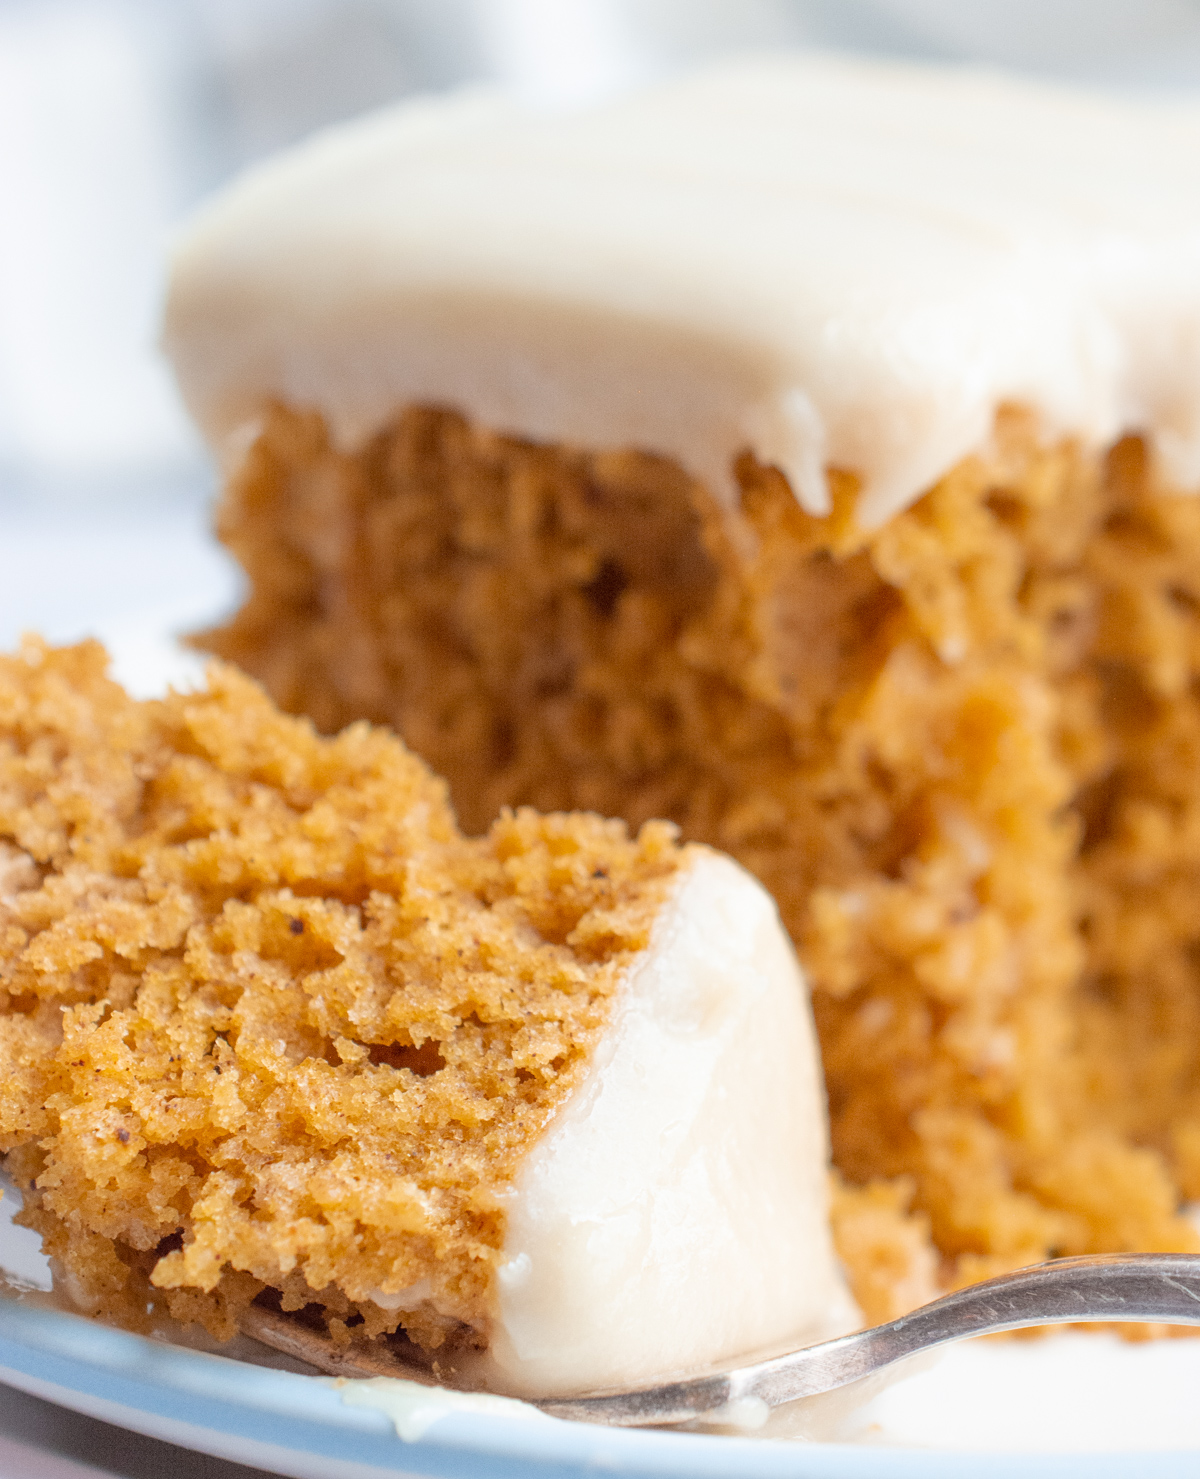 A bite of vegan pumpkin cake with frosting on a fork.